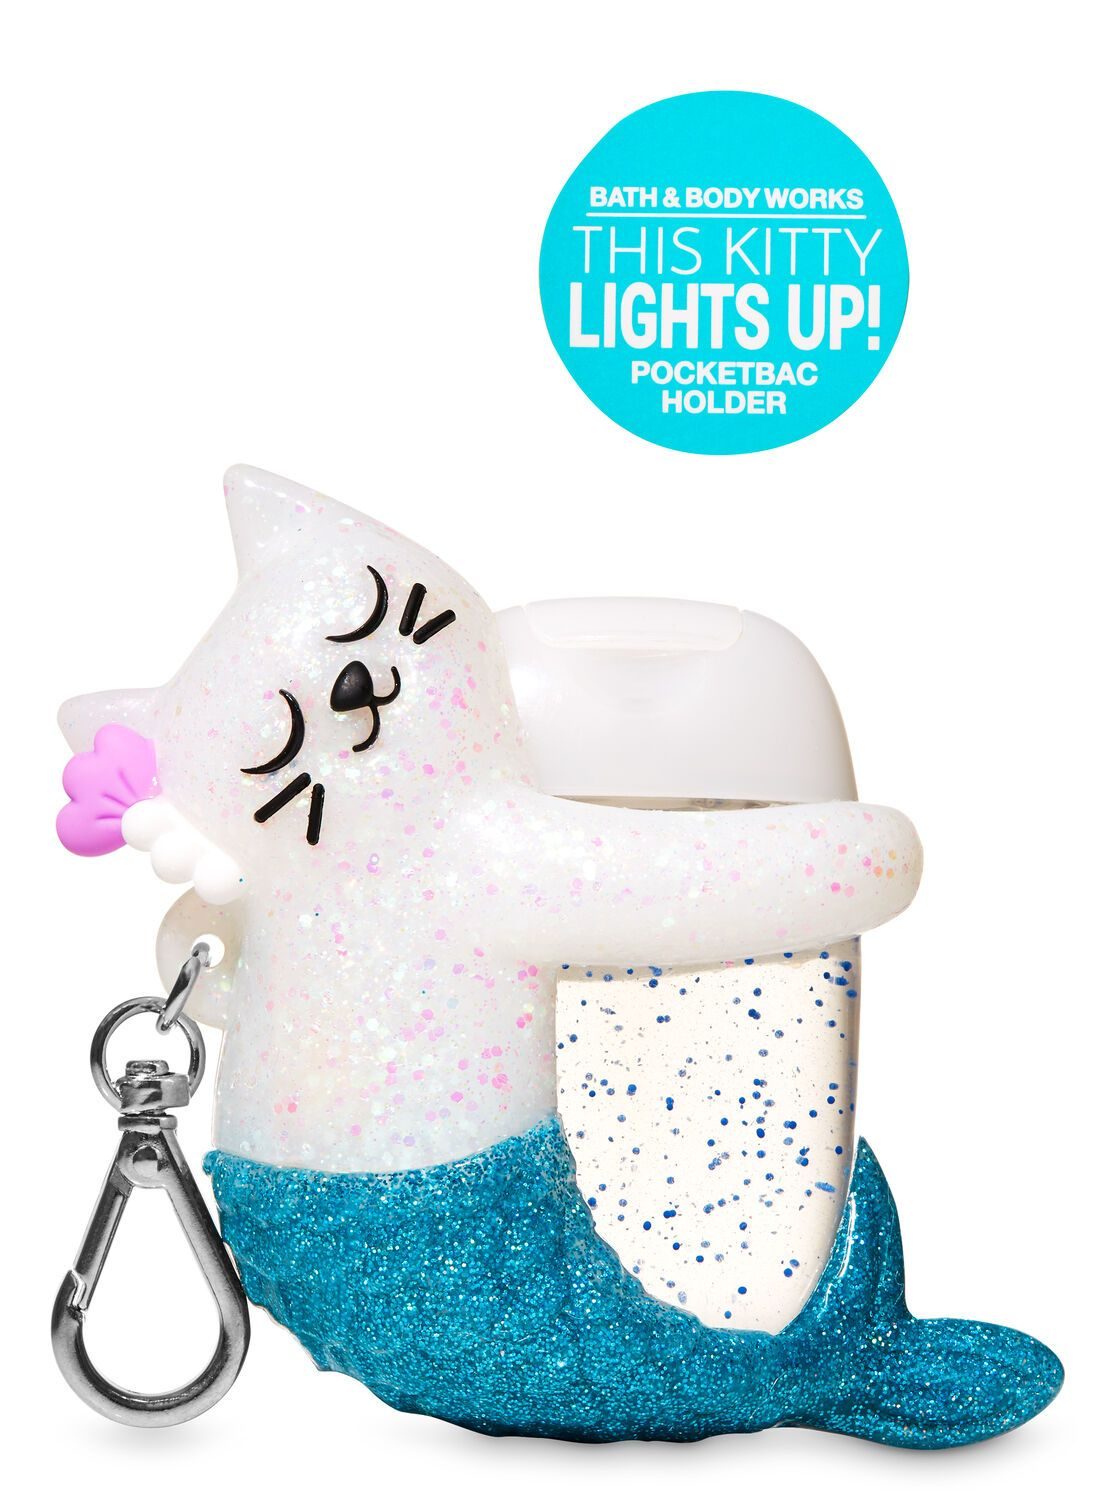 Bath Body Works Kitty Mermaid Light Up Pocketbac Holder In 2020